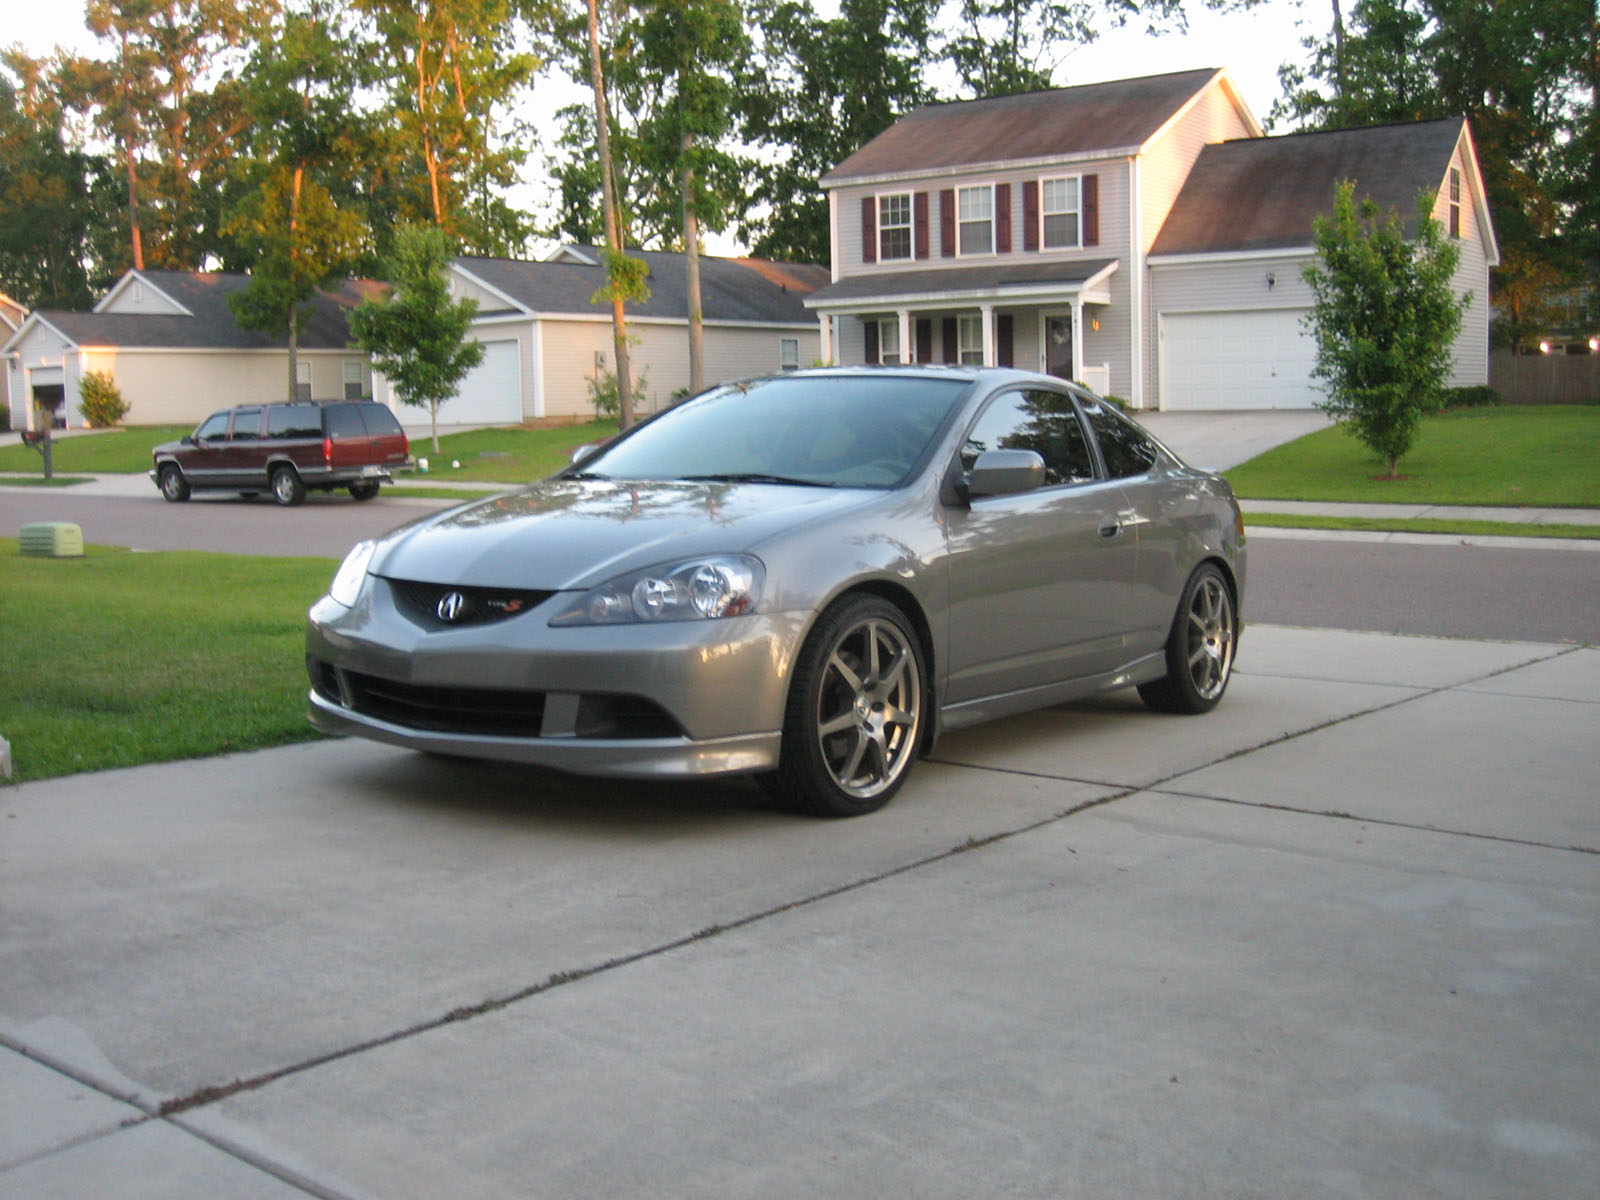 Acura RSX TypeS For Sale Chas South Carolina - Acura rsx type s turbo for sale